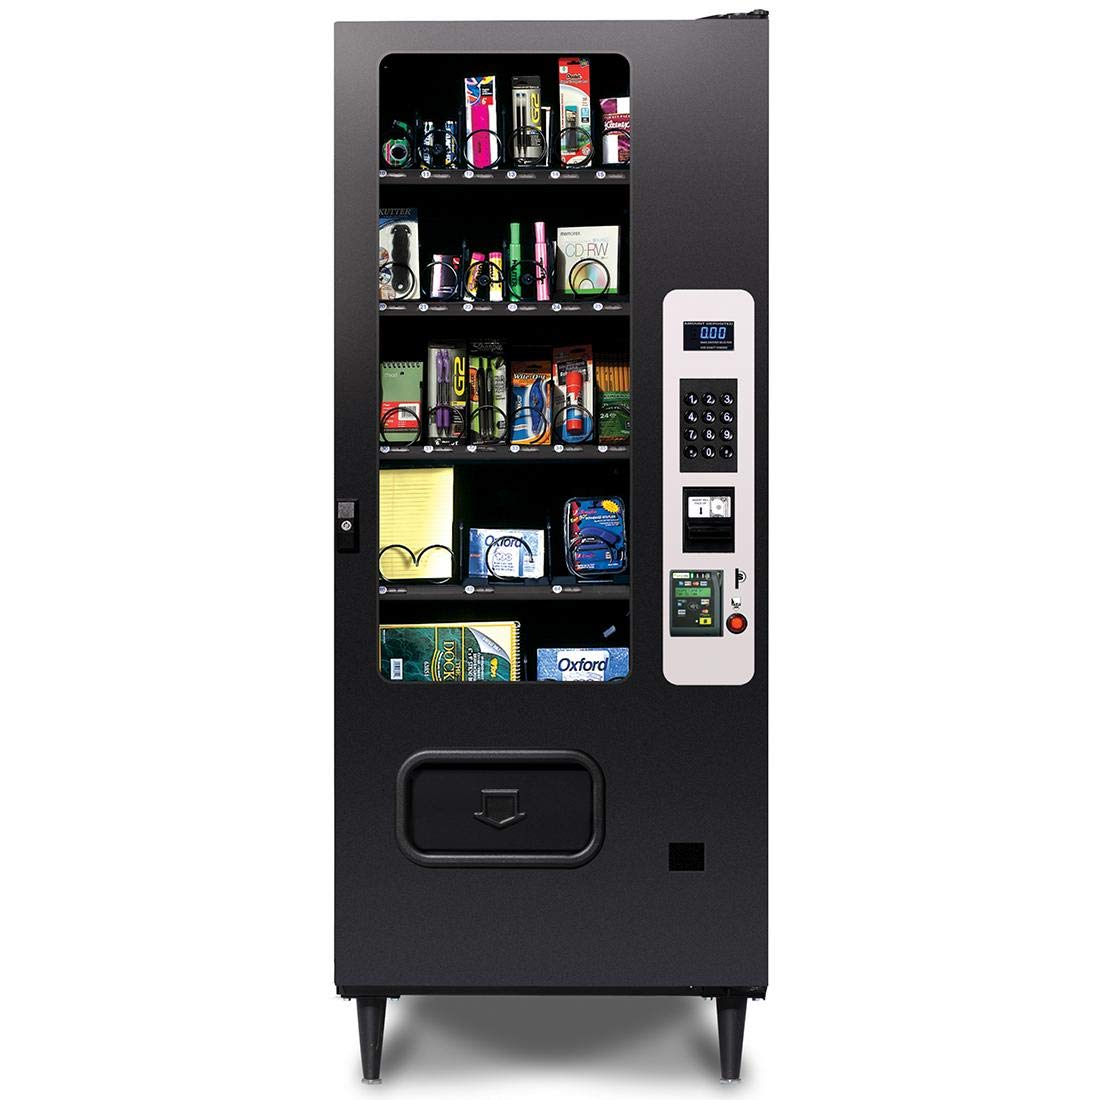 Selectivend School or Office 2021 OFFicial site autumn and winter new Supply Machine Vending